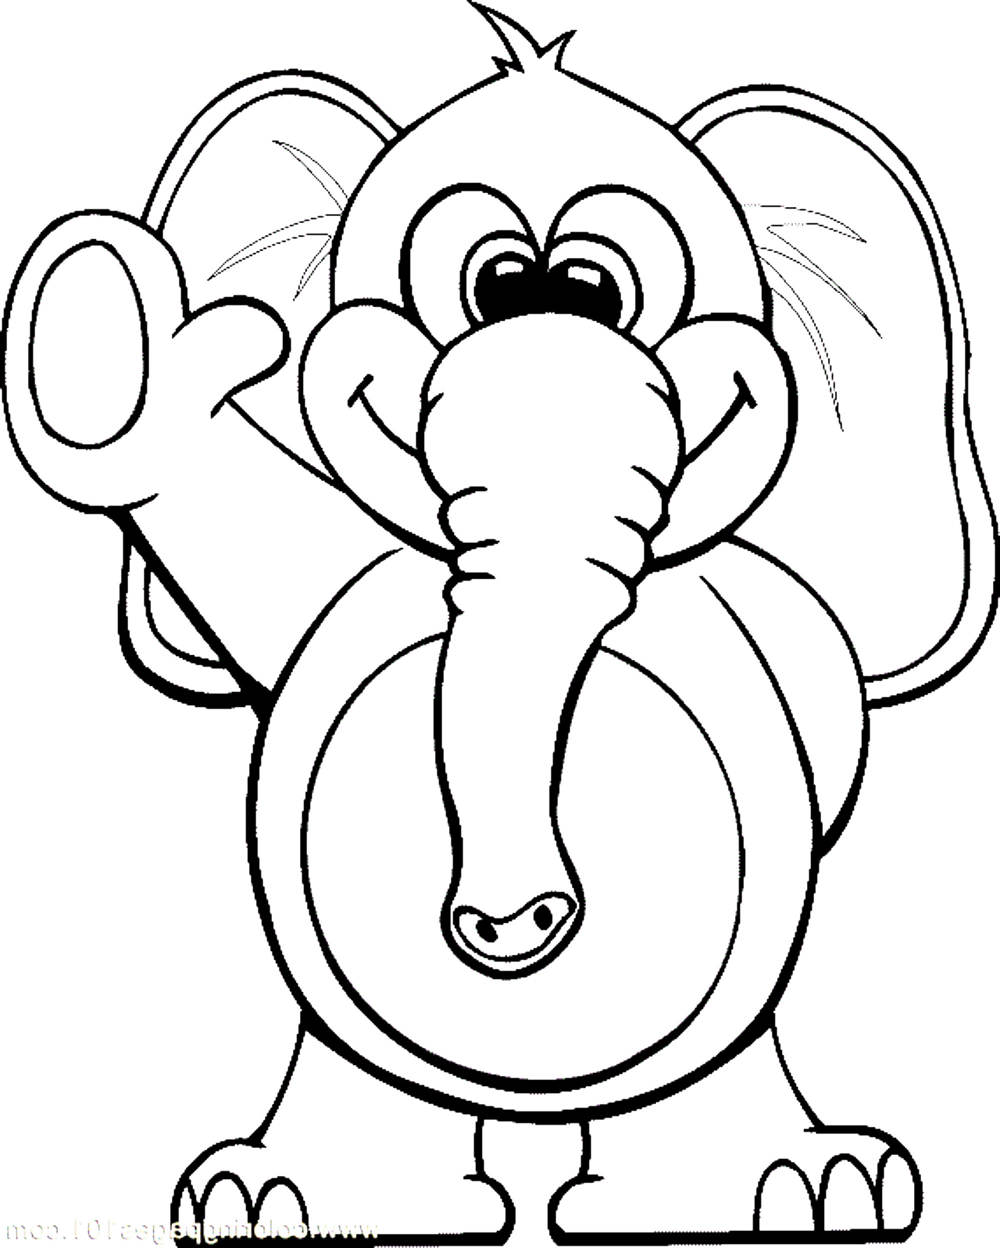 elephant colouring games print download teaching kids through elephant coloring games elephant colouring